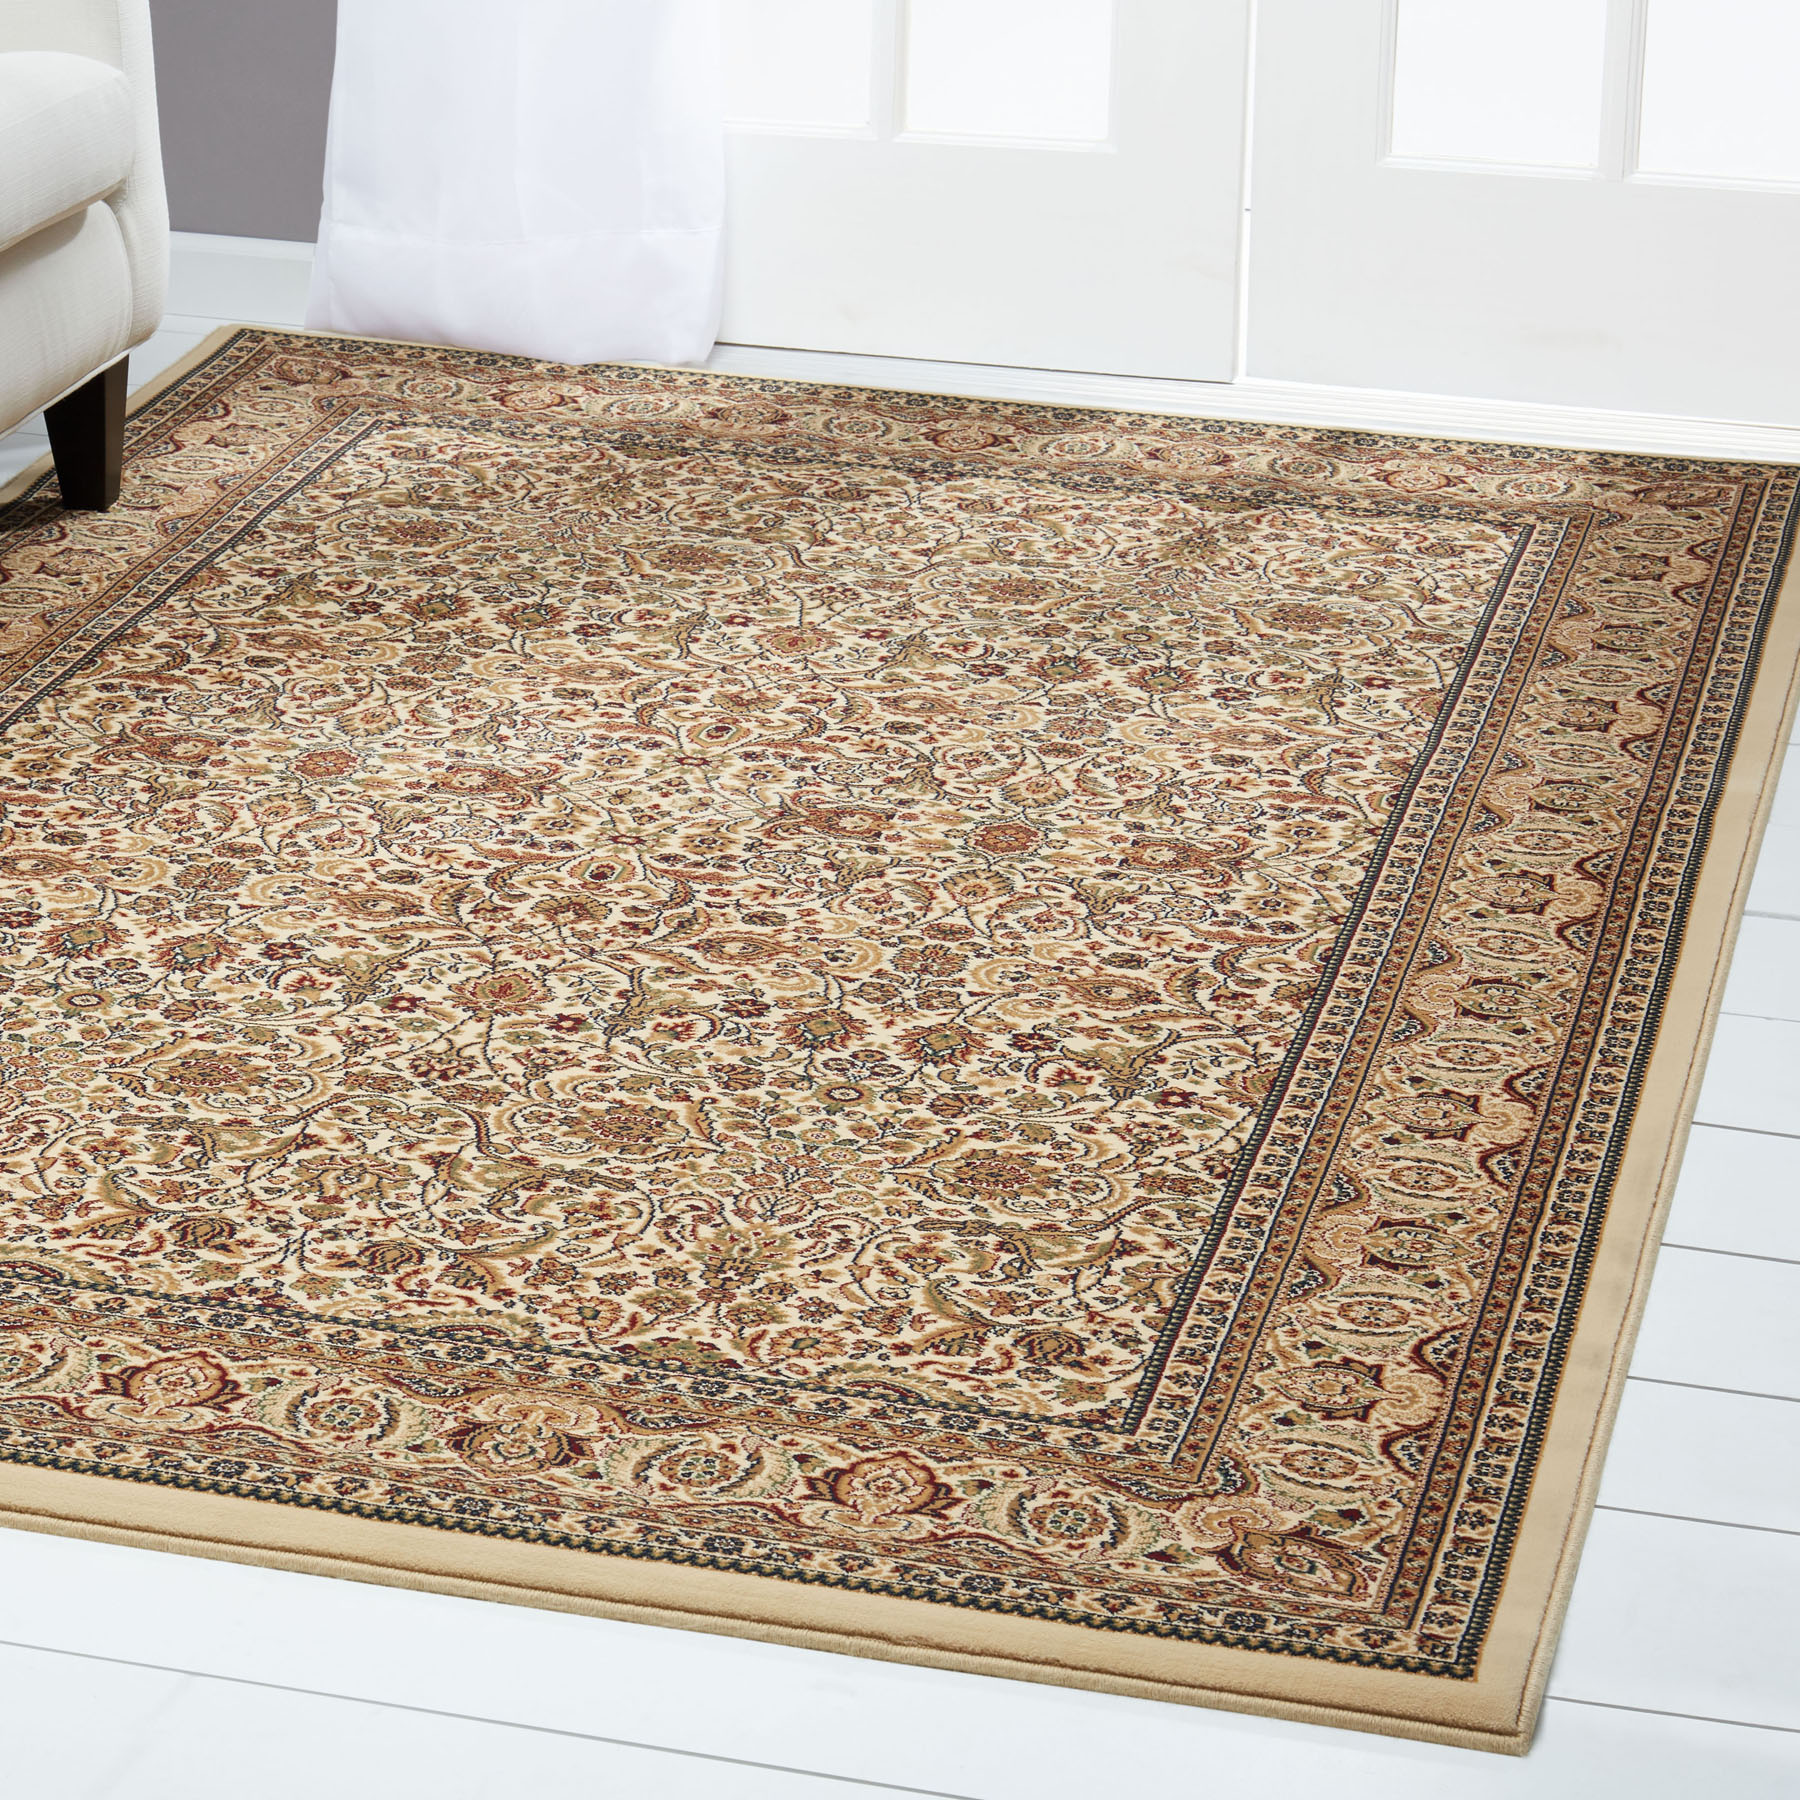 Free S H Ivory Persian Area Rug 4 X 6 Oriental Carpet 2 Actual 3